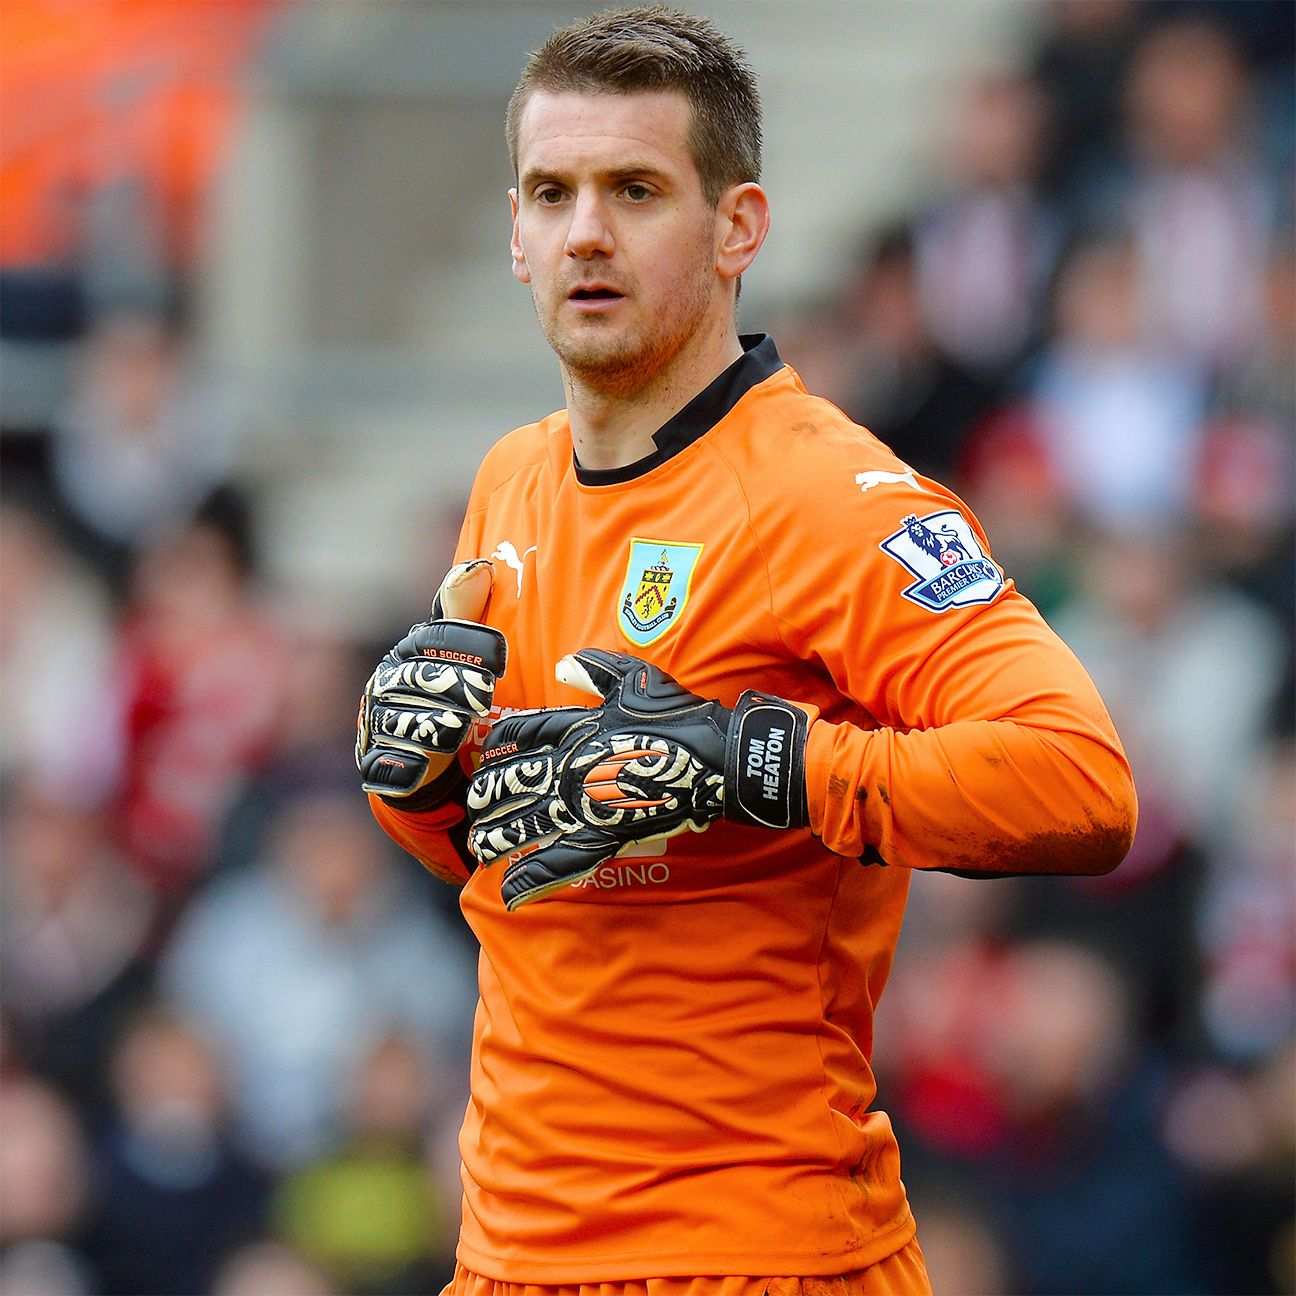 Goalkeeper Tom Heaton has started every Premier League match for Burnley in 2014-15.